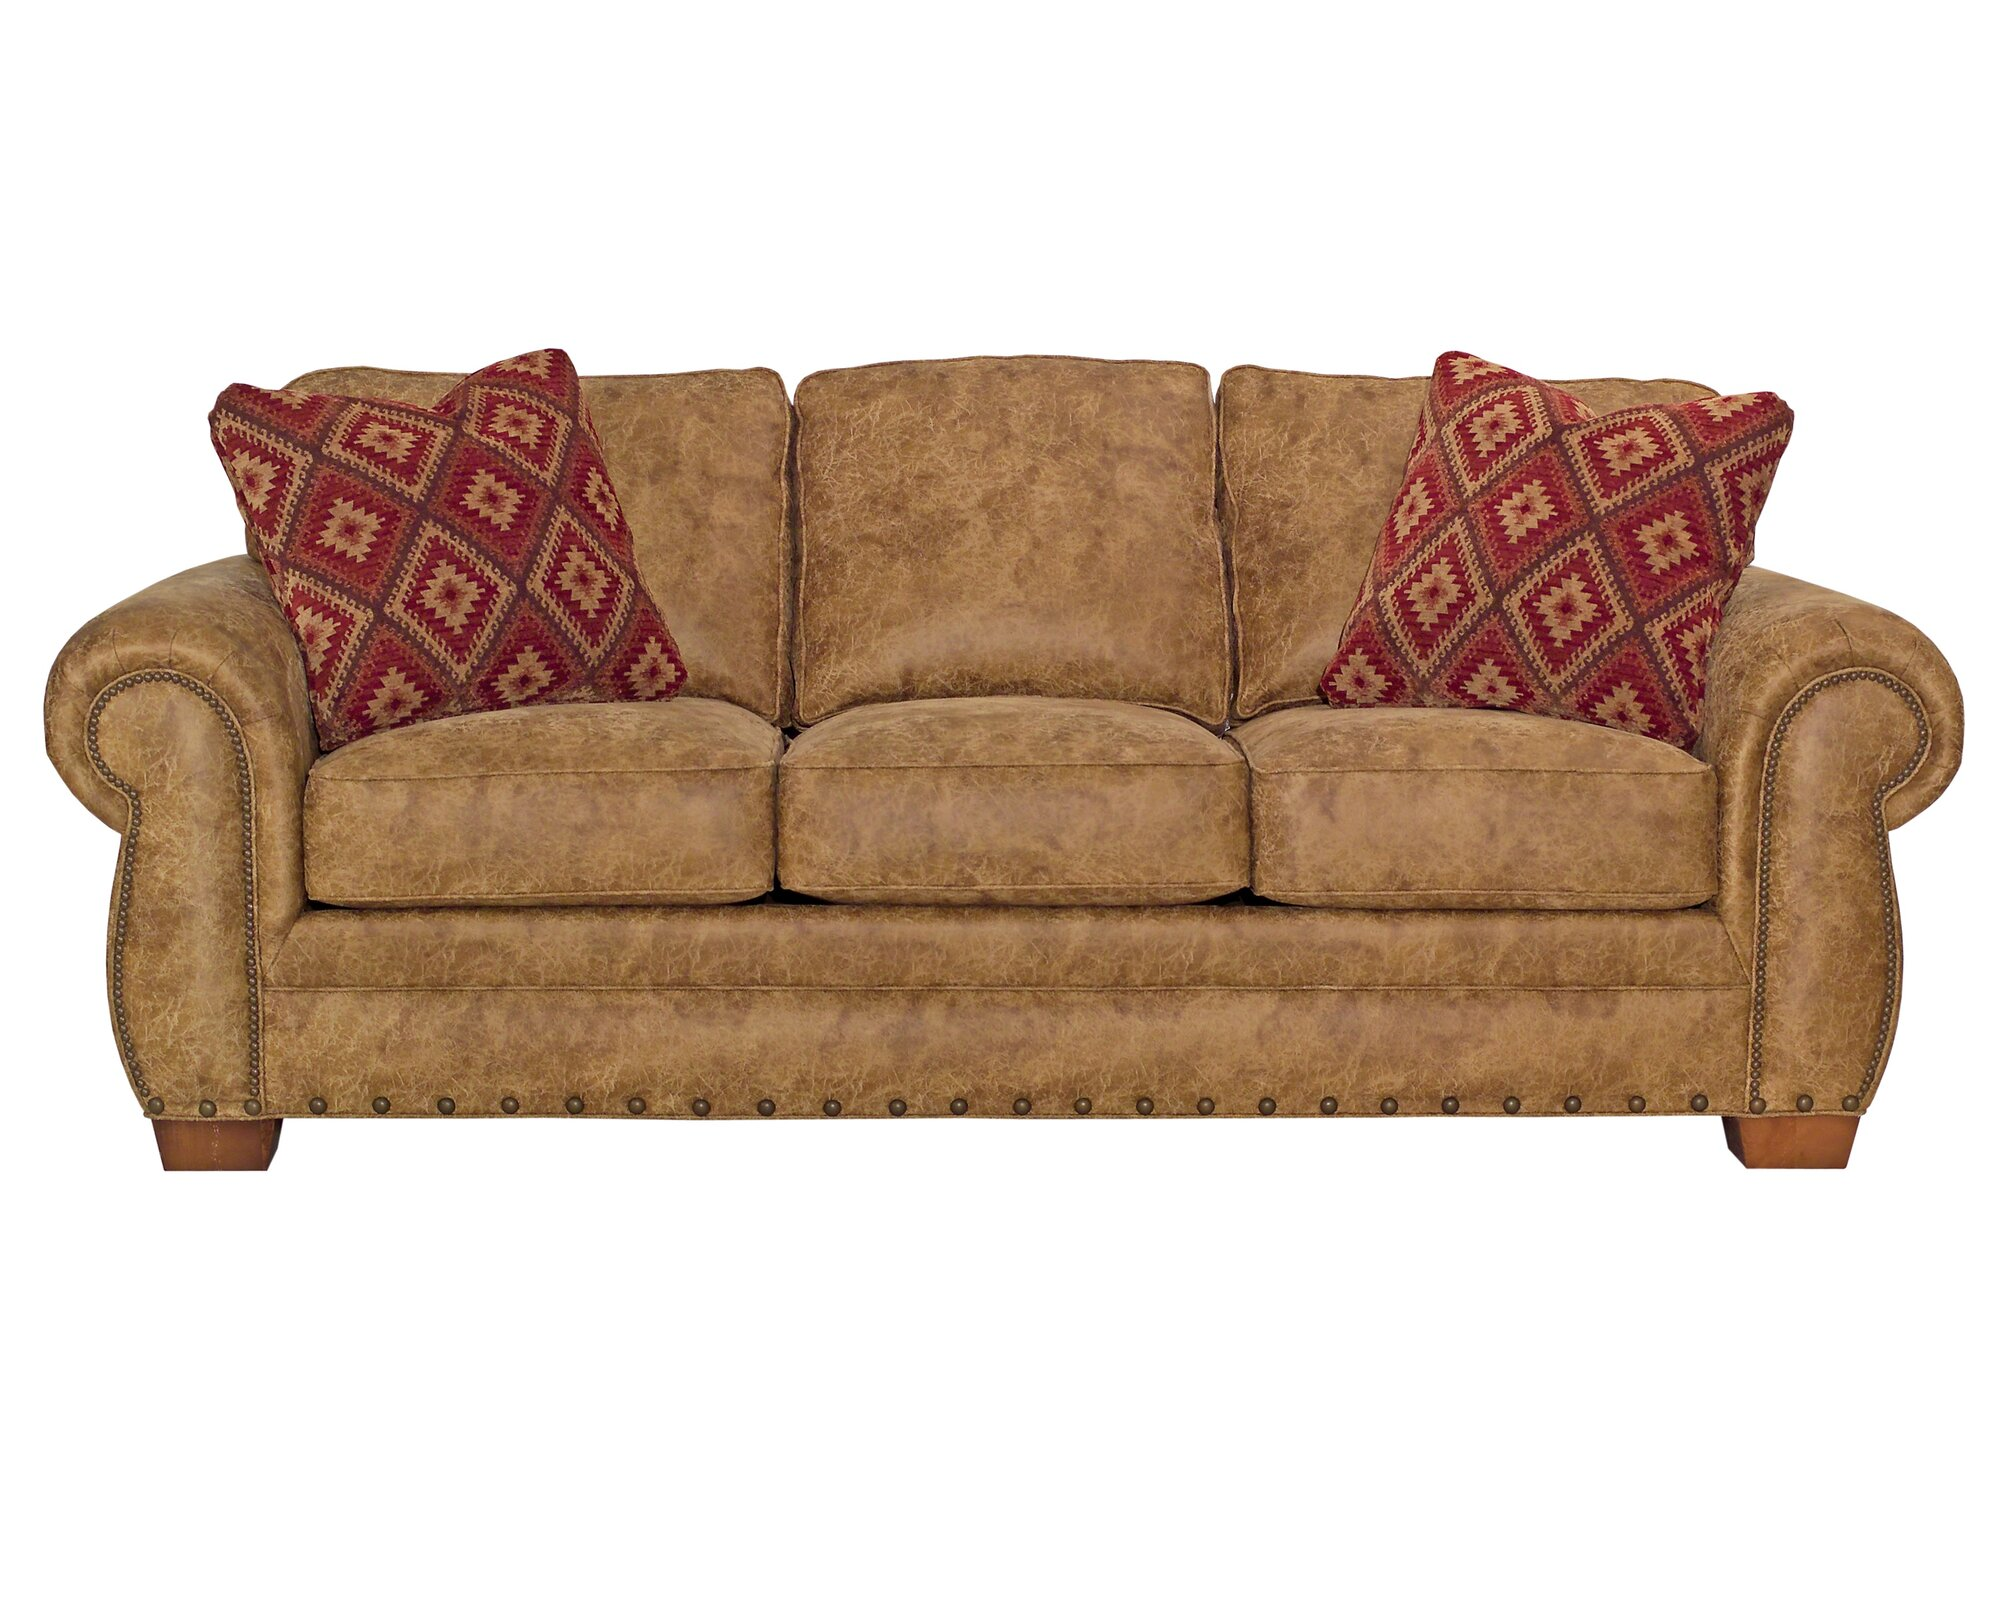 Broyhill cambridge sofa ebay for Broyhill chaise lounge cushions